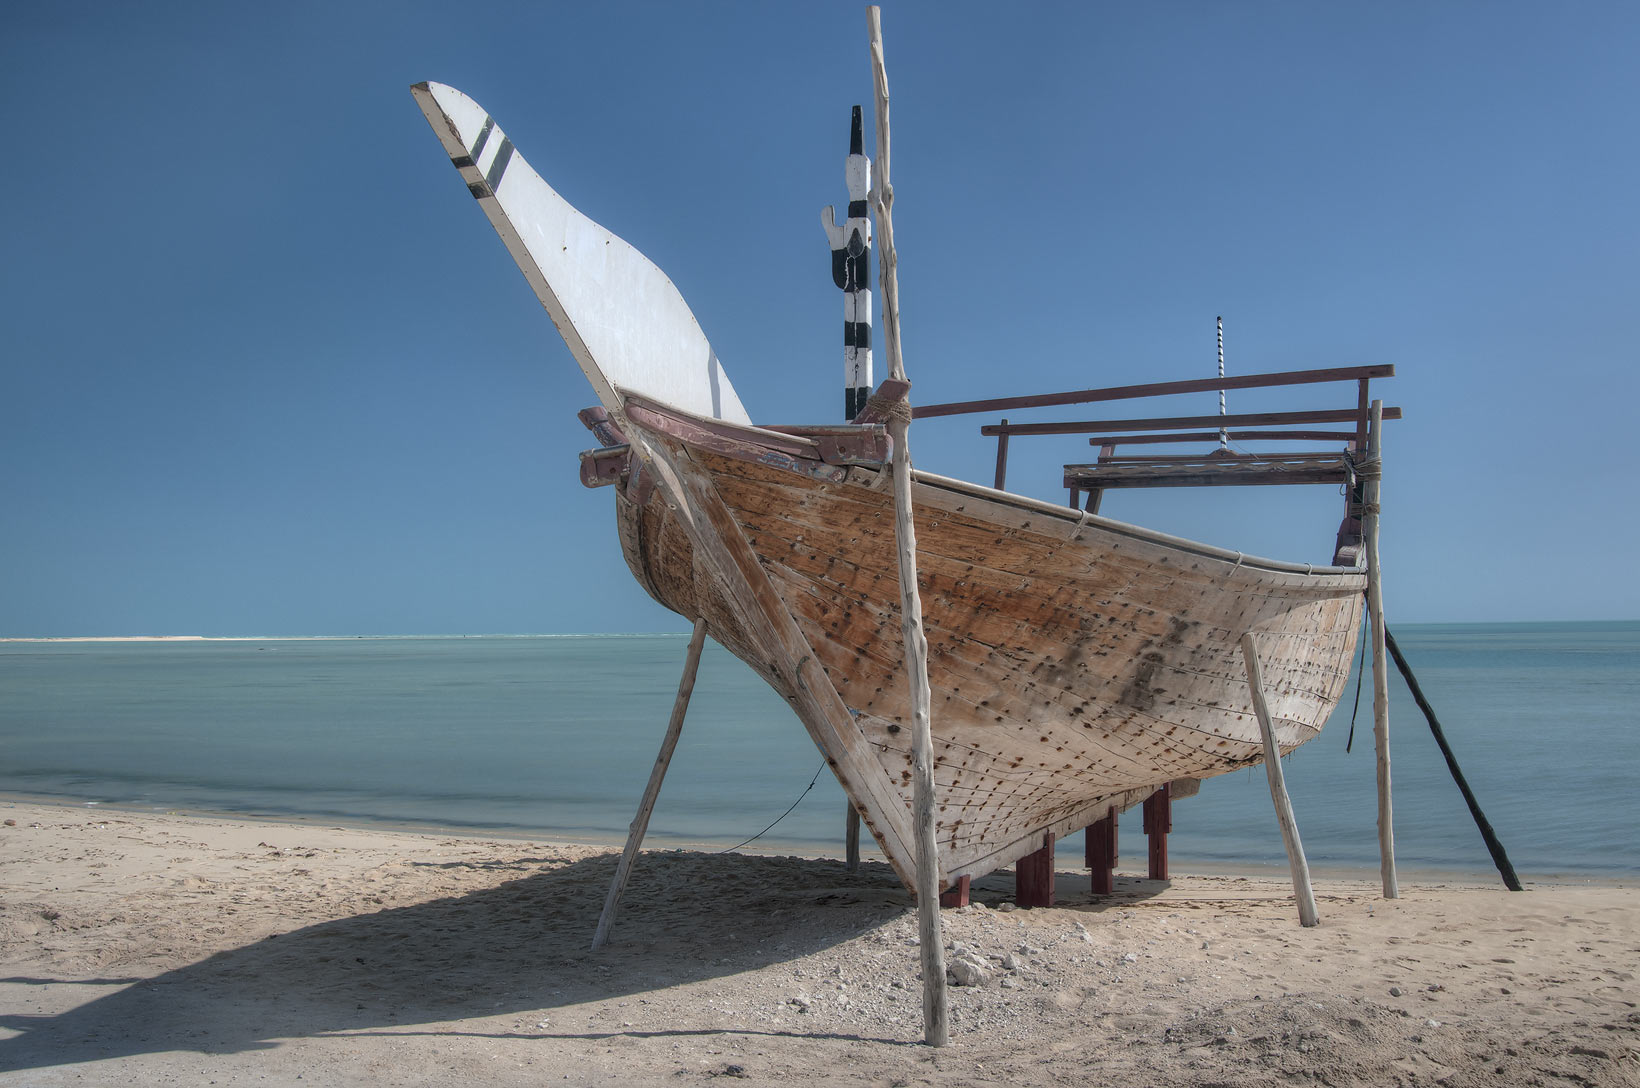 Beached traditional fishing boat in Al Wakra, Qatar